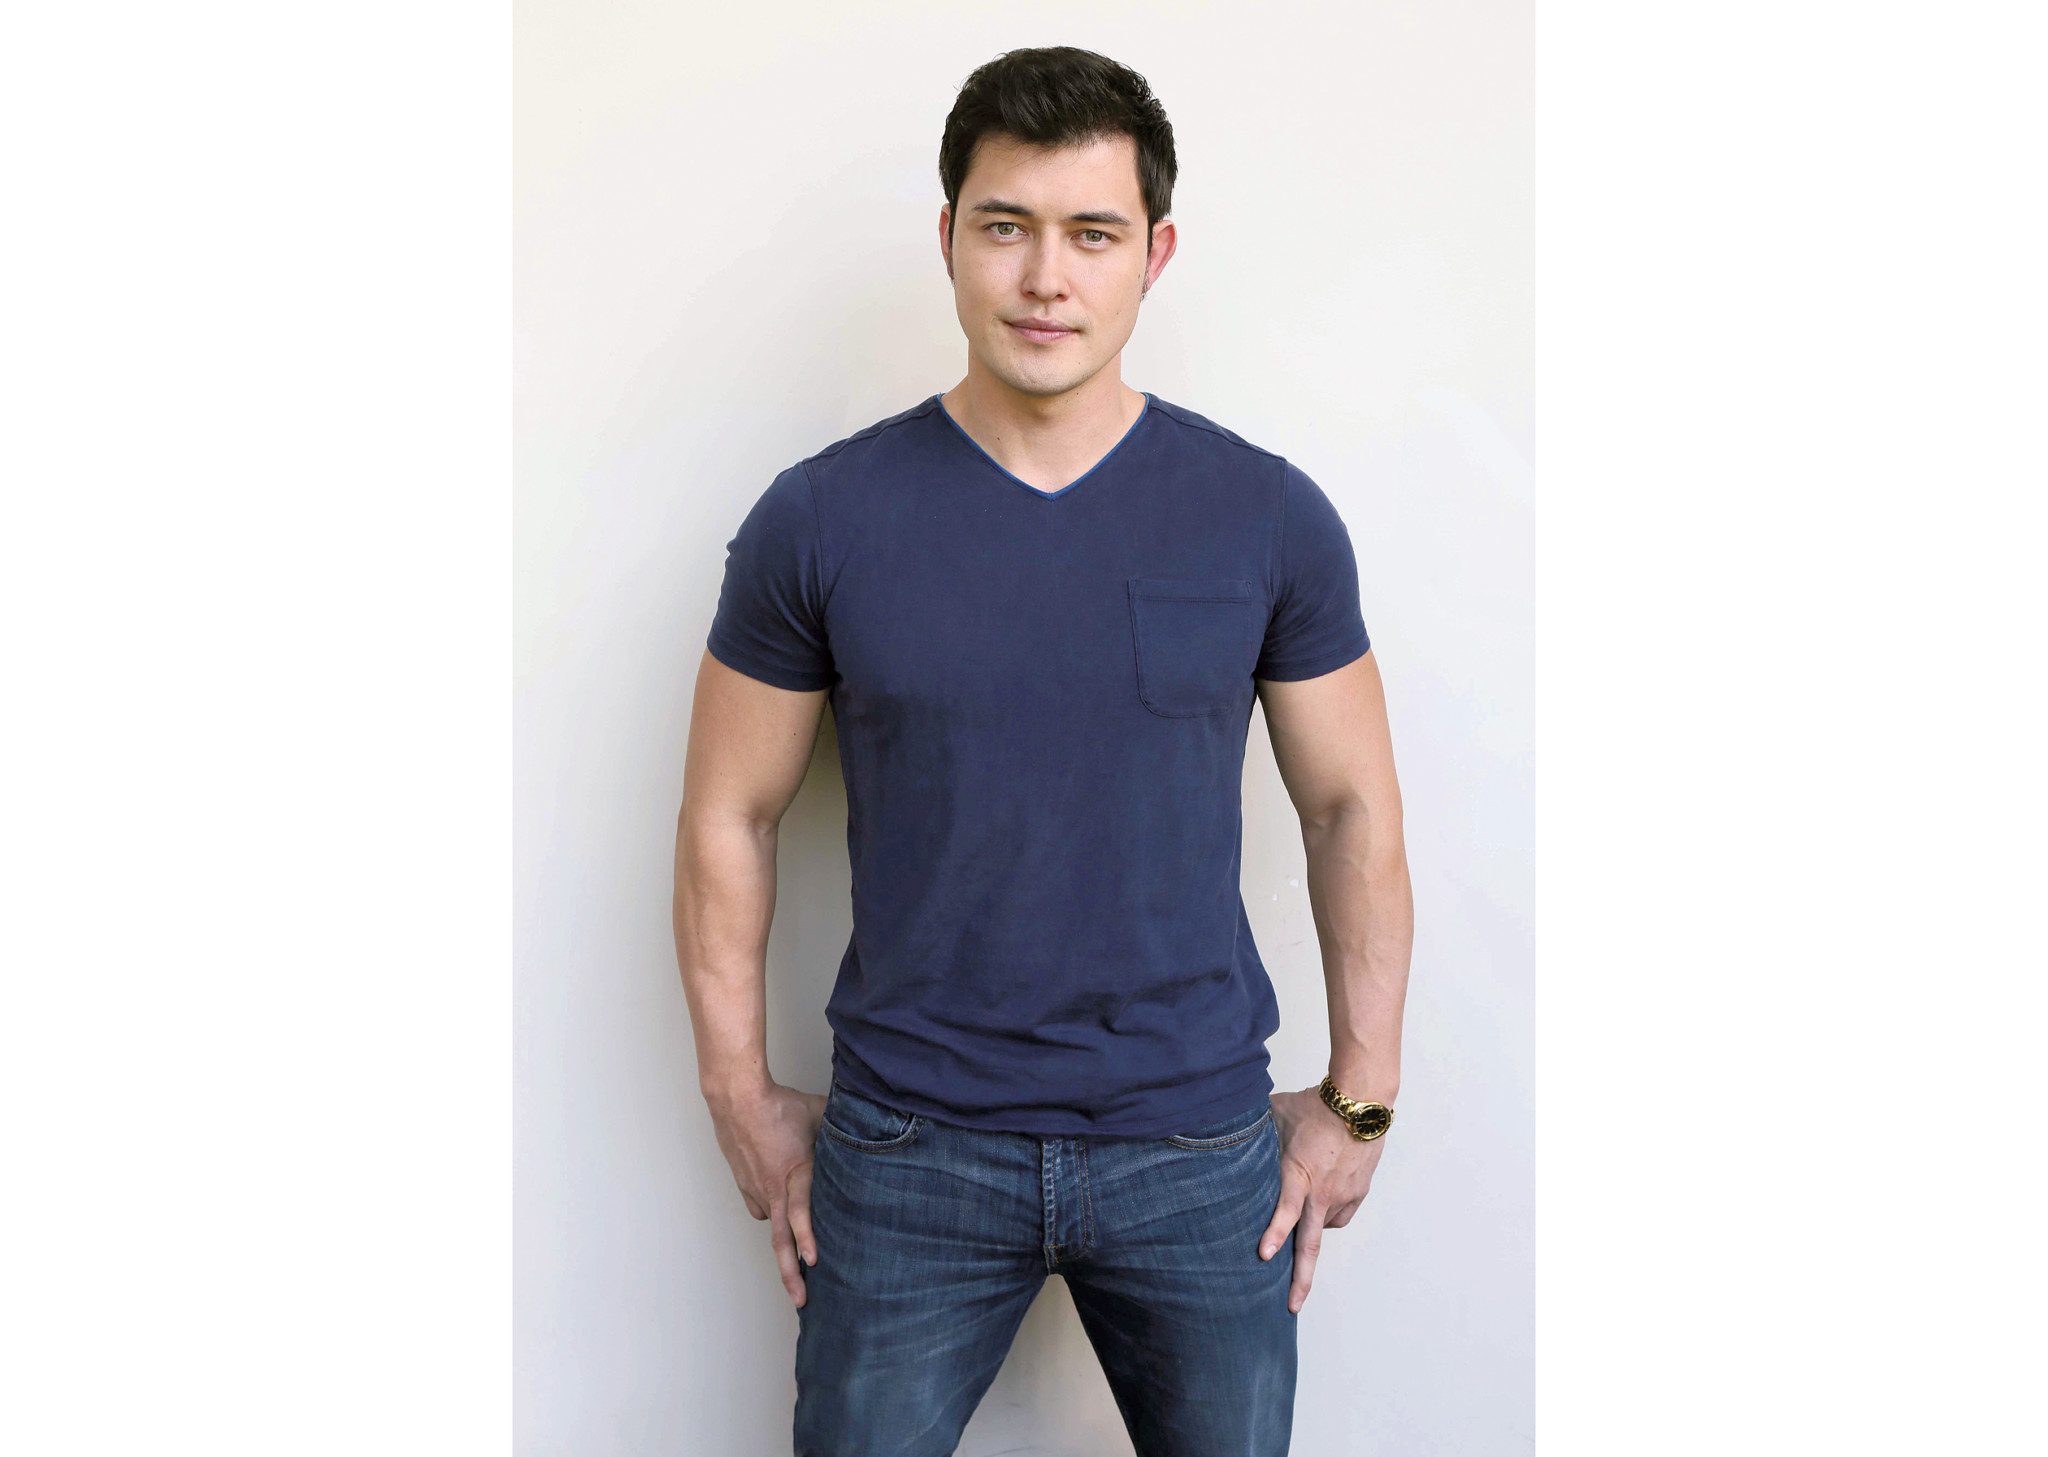 christopher sean days of our lives